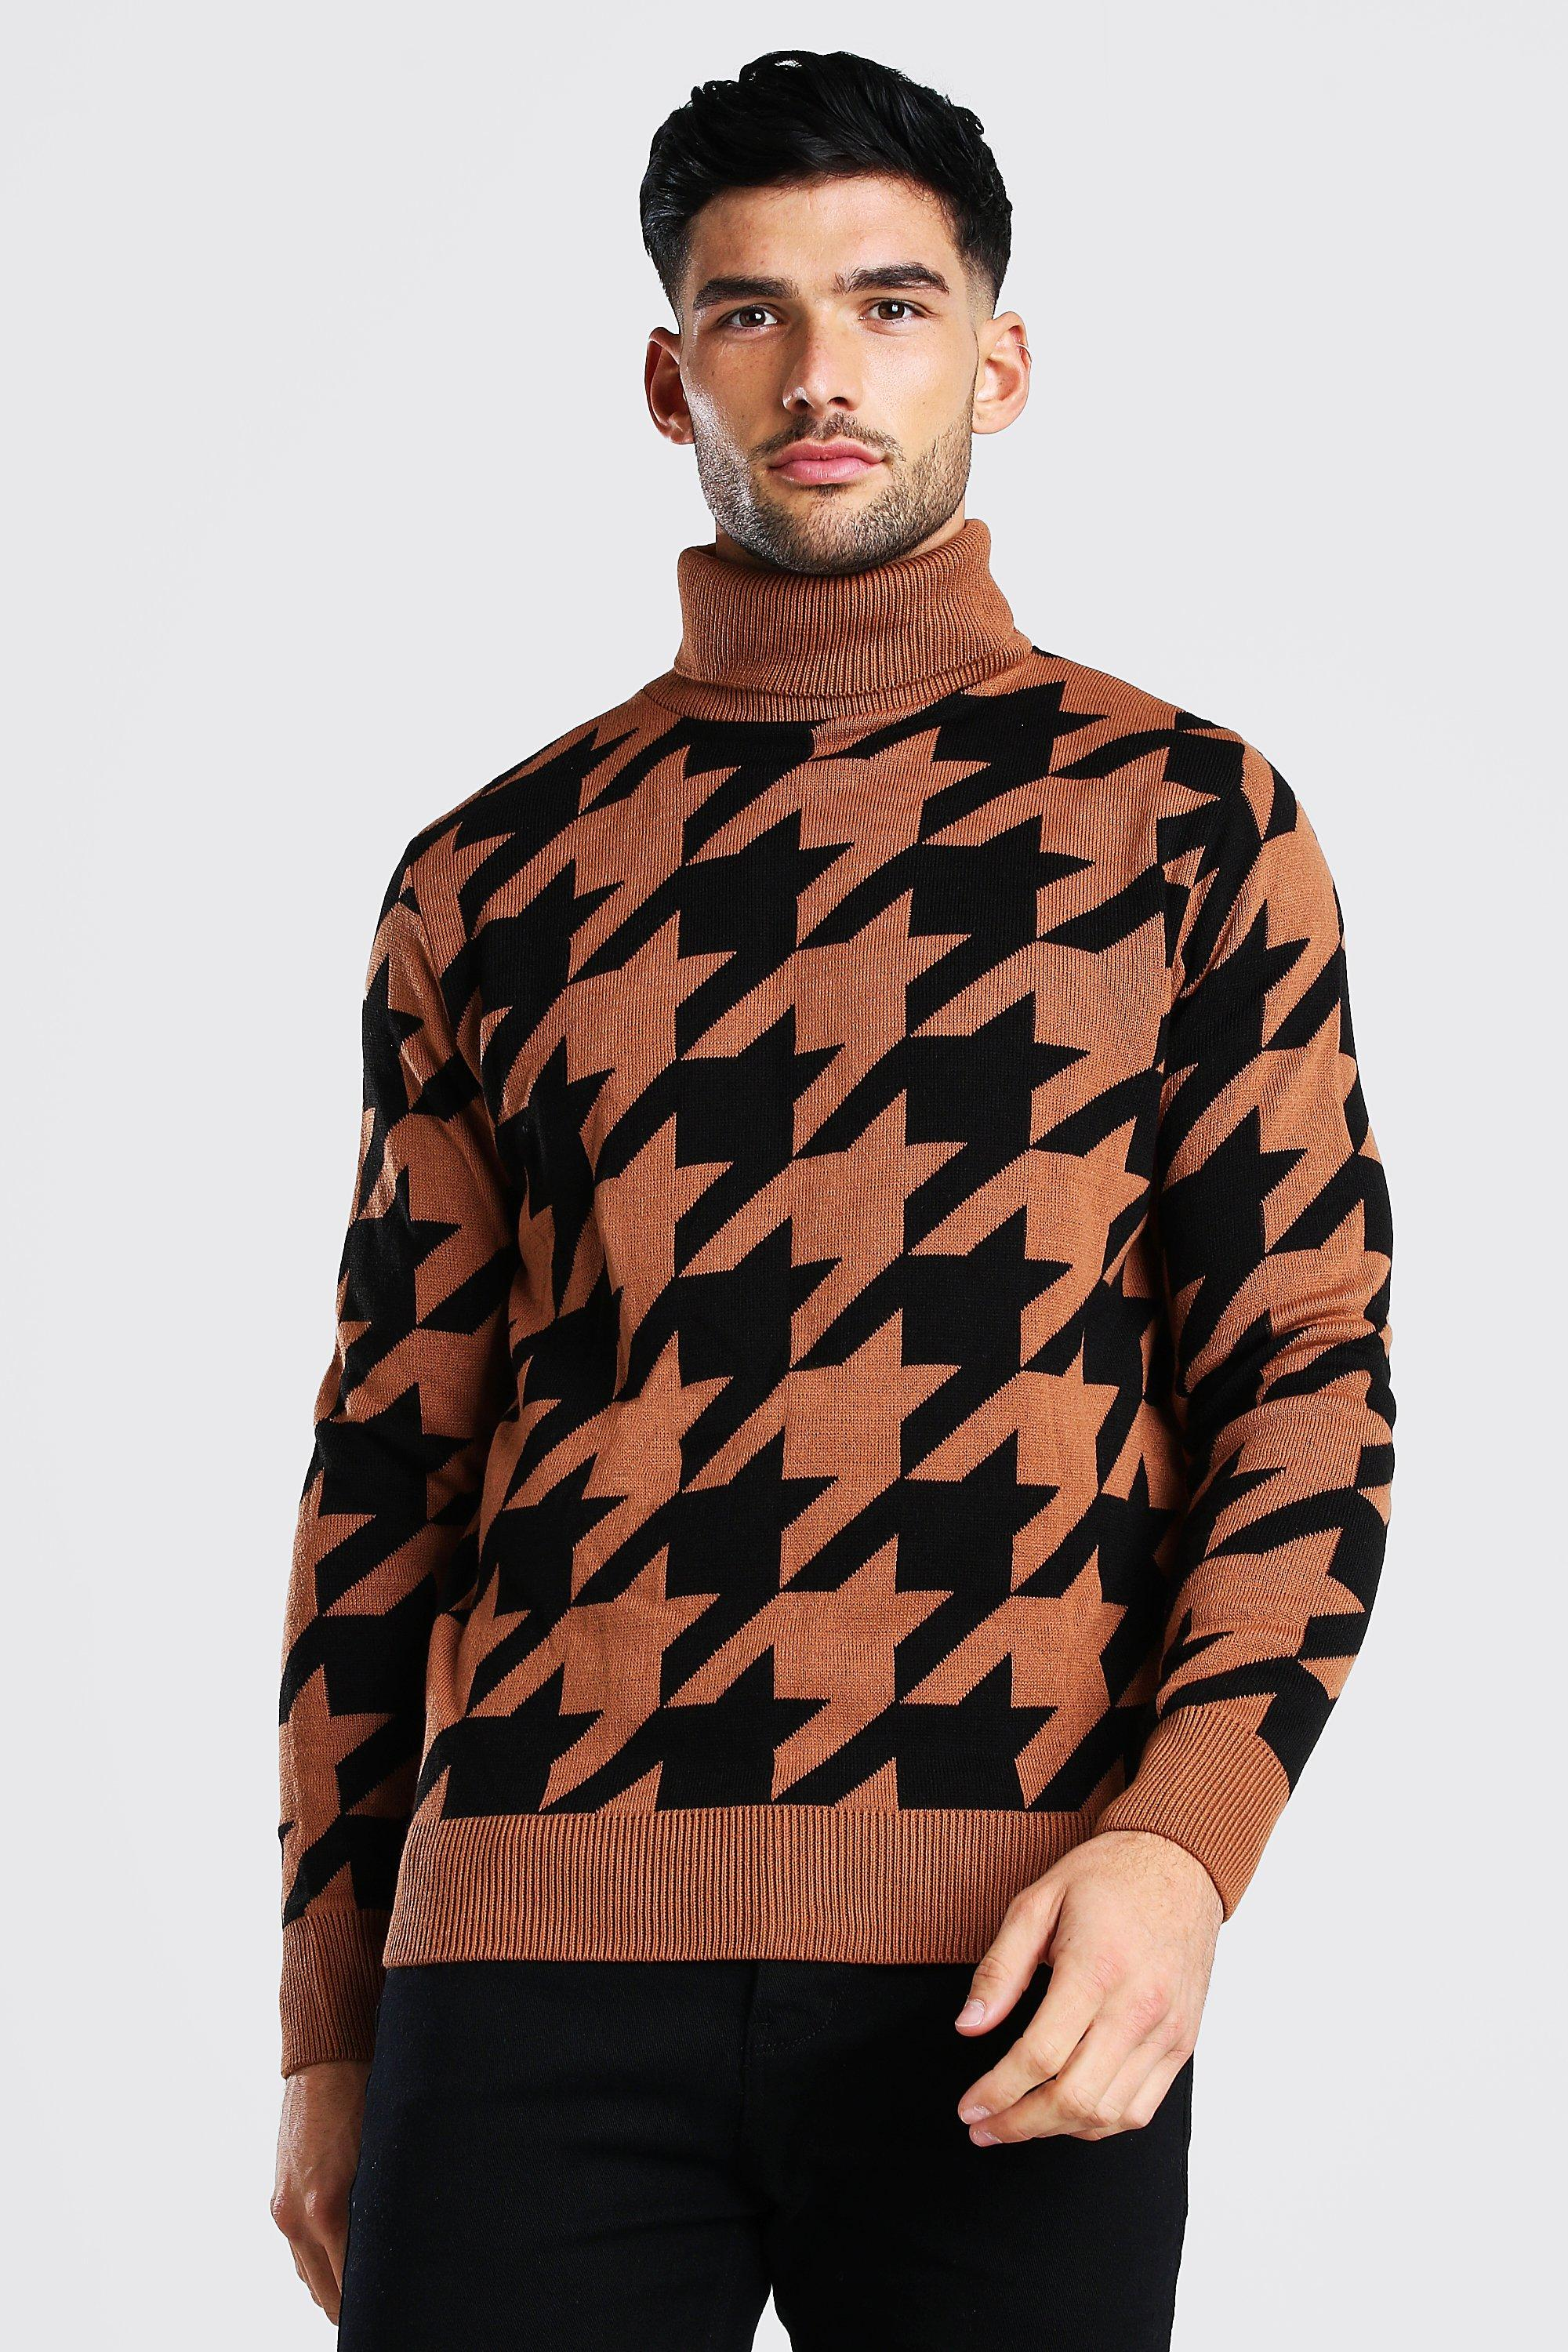 60s 70s Men's Jackets & Sweaters Mens Dogtooth Roll Neck Chunky Sweater - Orange $19.20 AT vintagedancer.com